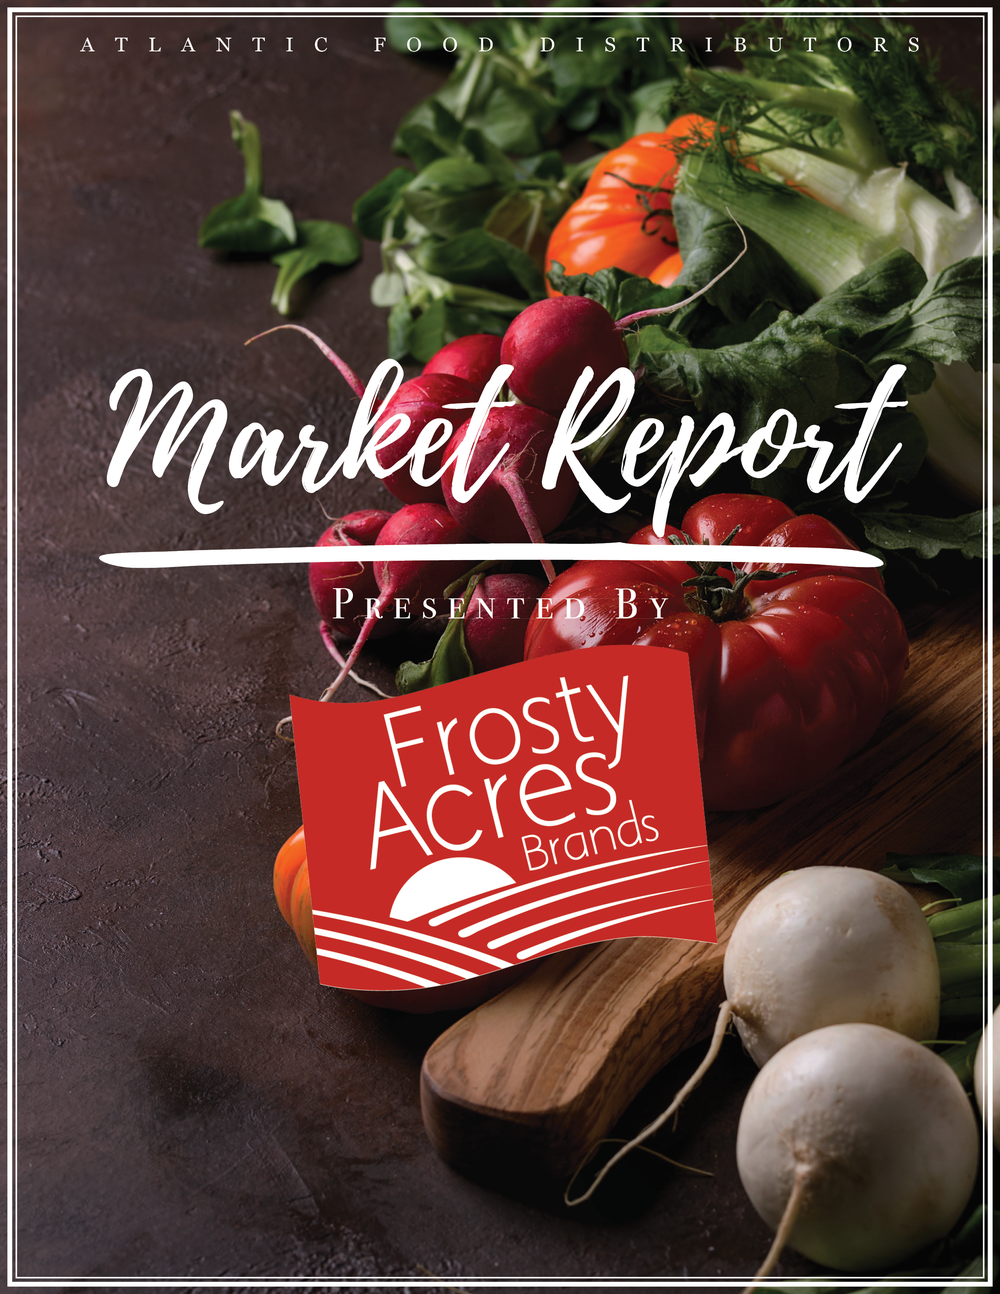 Our weekly Market Report offers our customers an inside look at current market trends that includes pricing, supply, demand, and quality of purchasing products. -